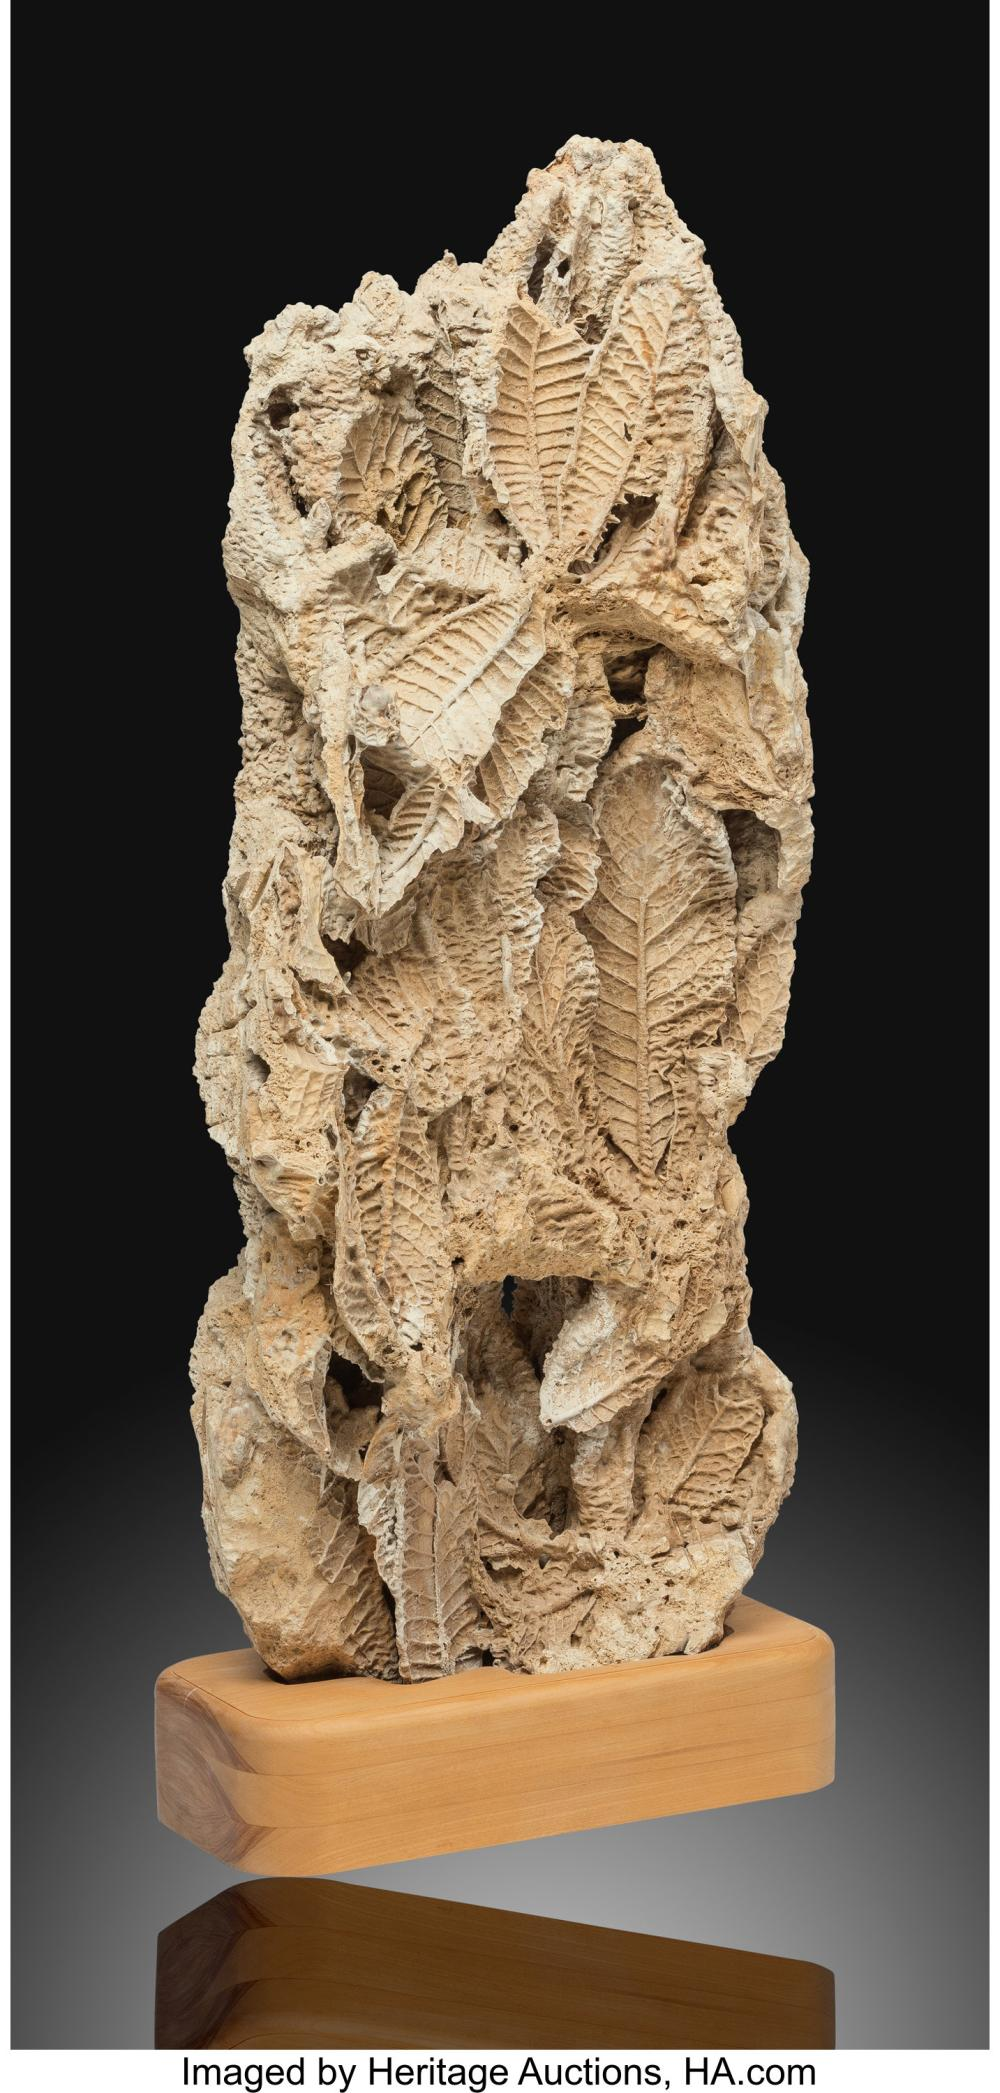 Lot 21314: Fossil Leaves Unidentified Species Presumed Austria This decorative piece is m